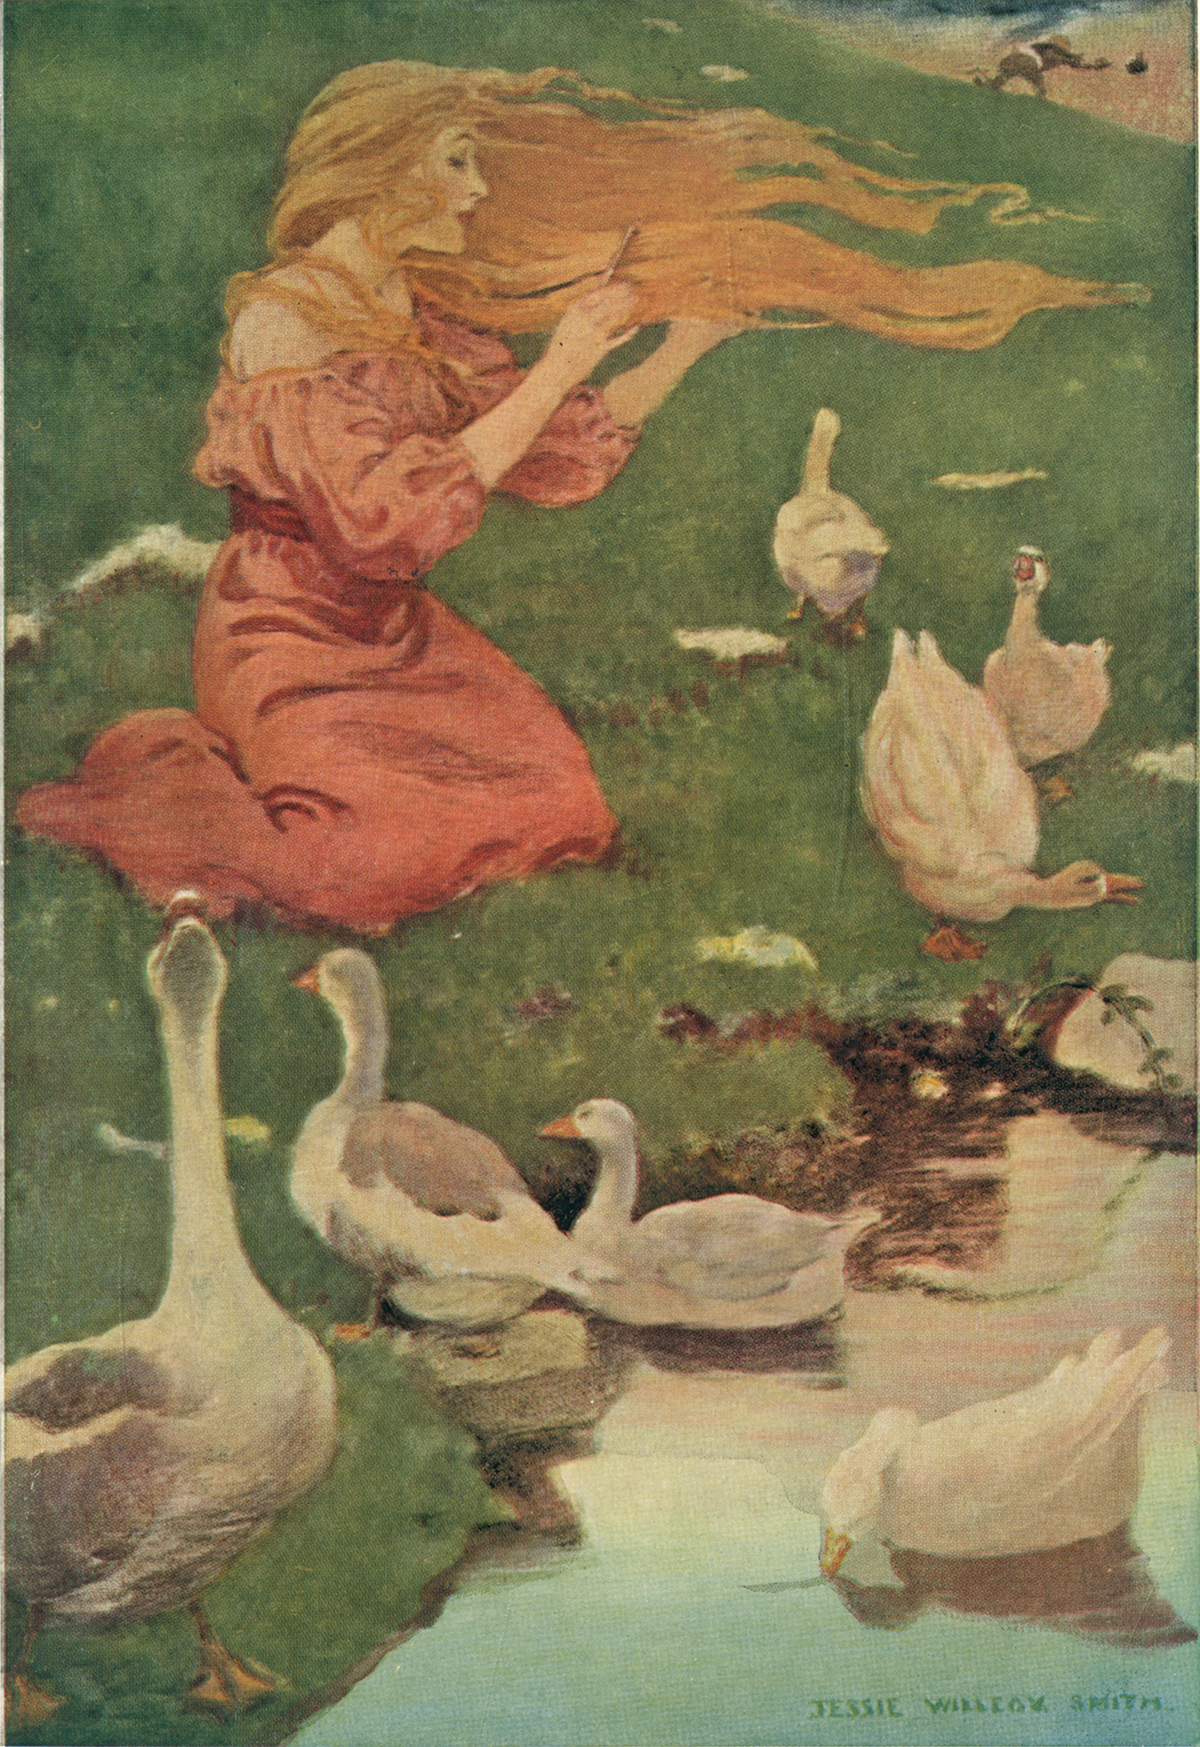 The Goose Girl Illustration by Jessie Willcox Smith